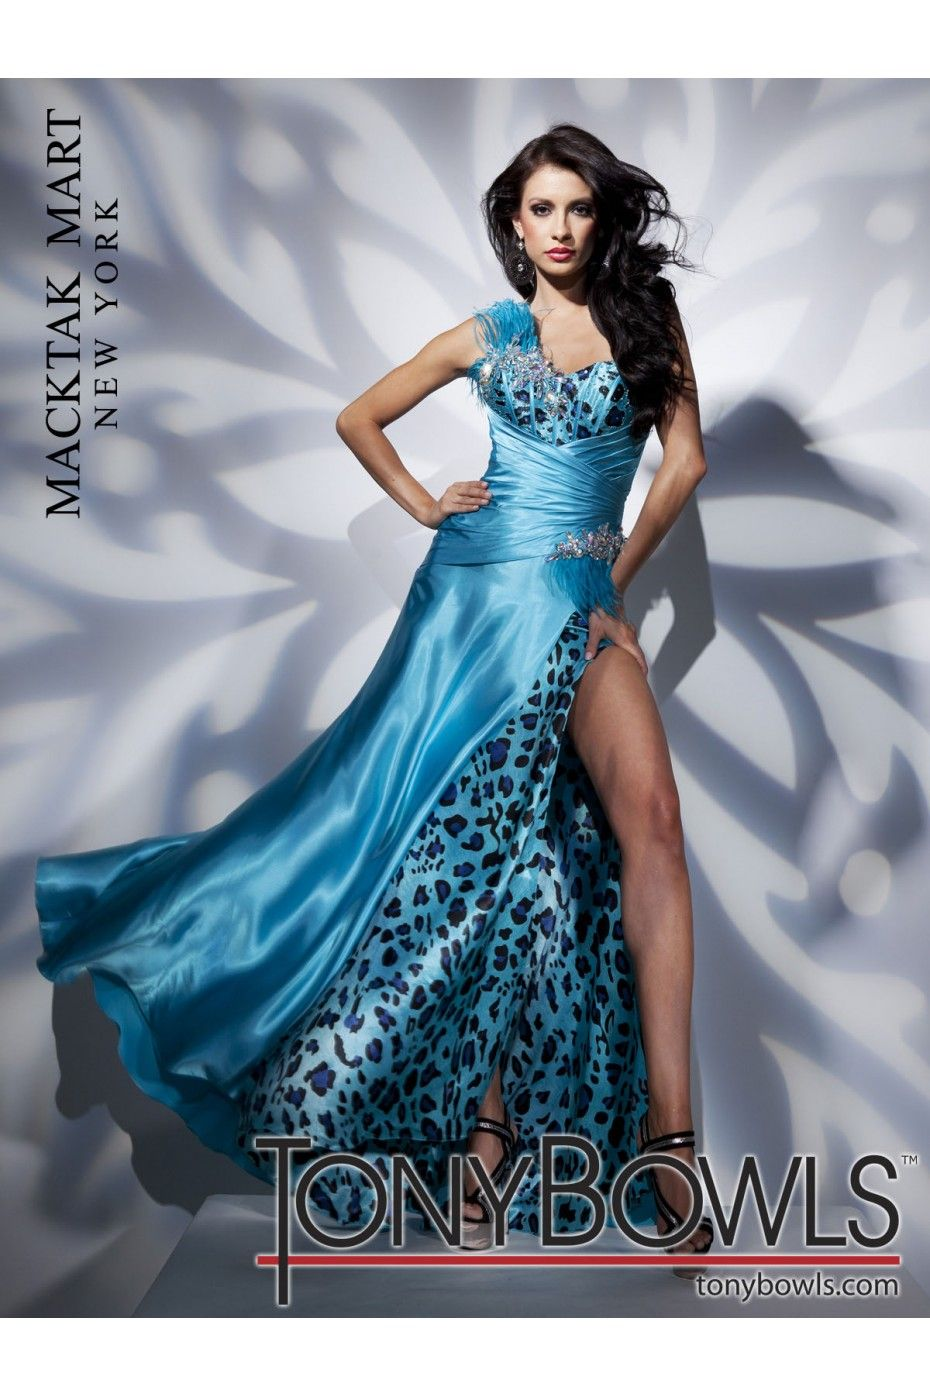 I want this prom dress so freakin bad ugly ass dresses